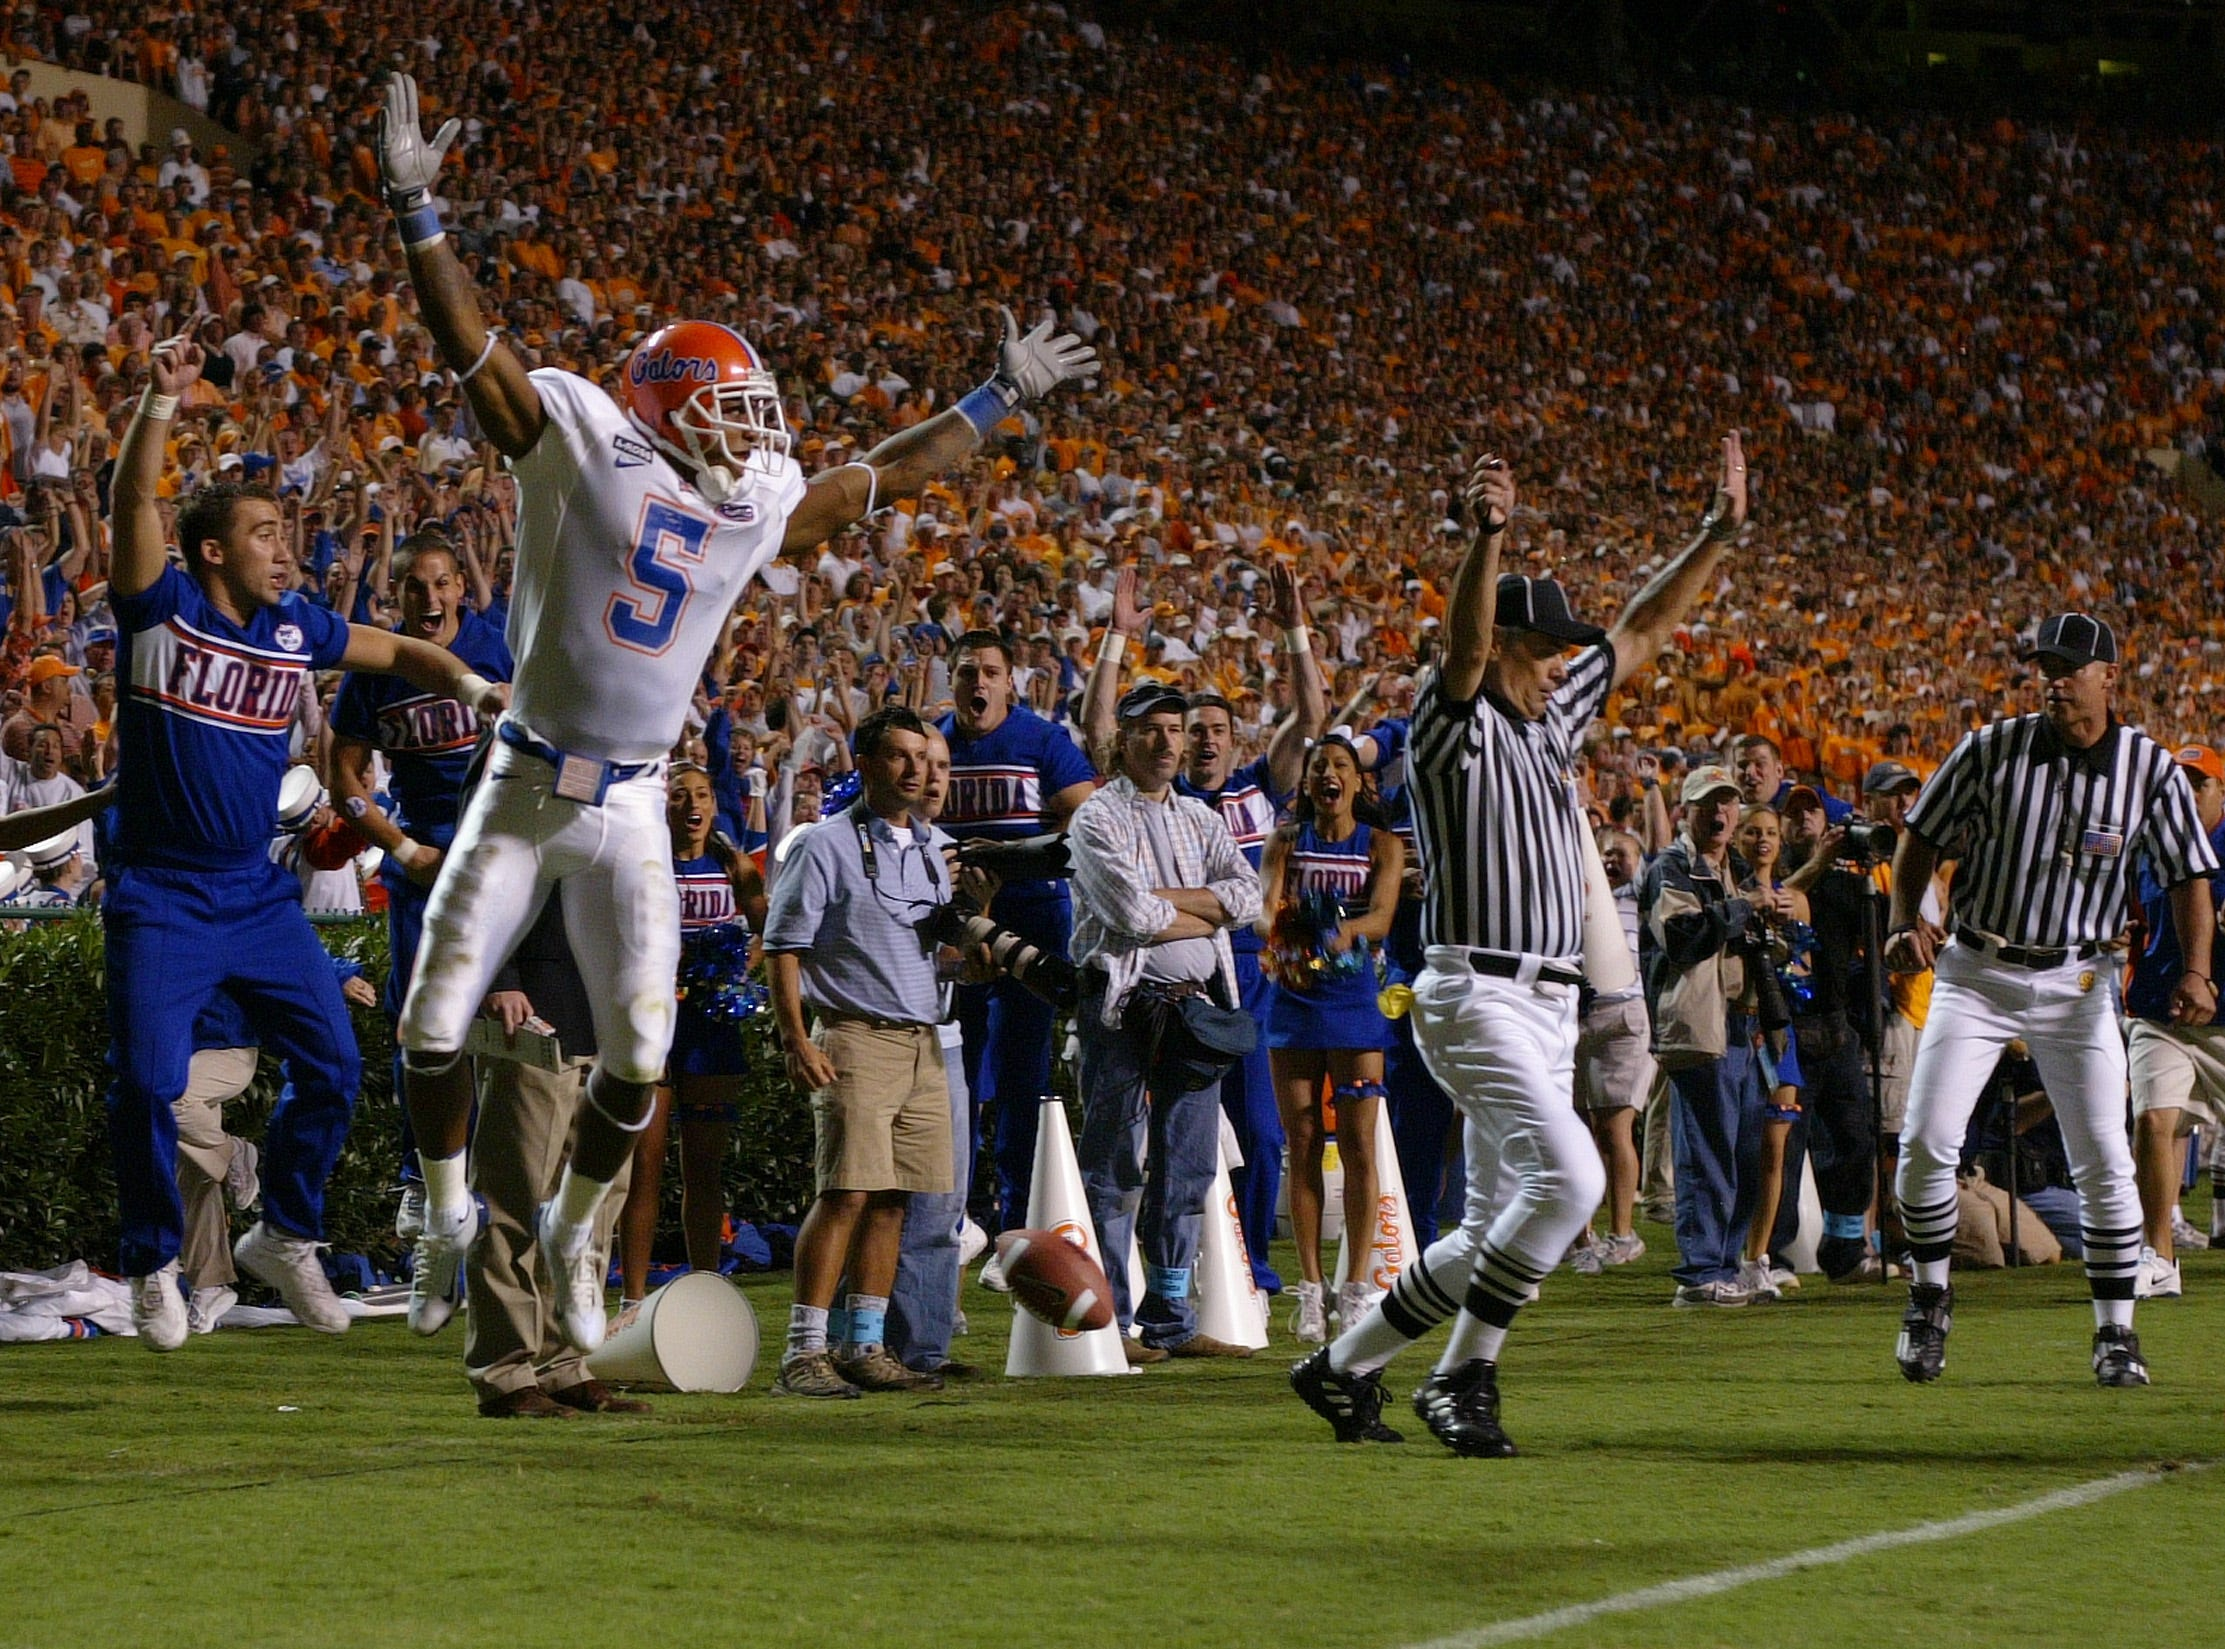 Florida's Andre Caldwell celebrates after making a 30-yard pass reception and run against Tennessee Saturday at Neyland Stadium. The play carried the ball inside the Tennessee one-yard line and the Gators scored a touchdown on the next play. Tennessee won the game 30-28. 2004.